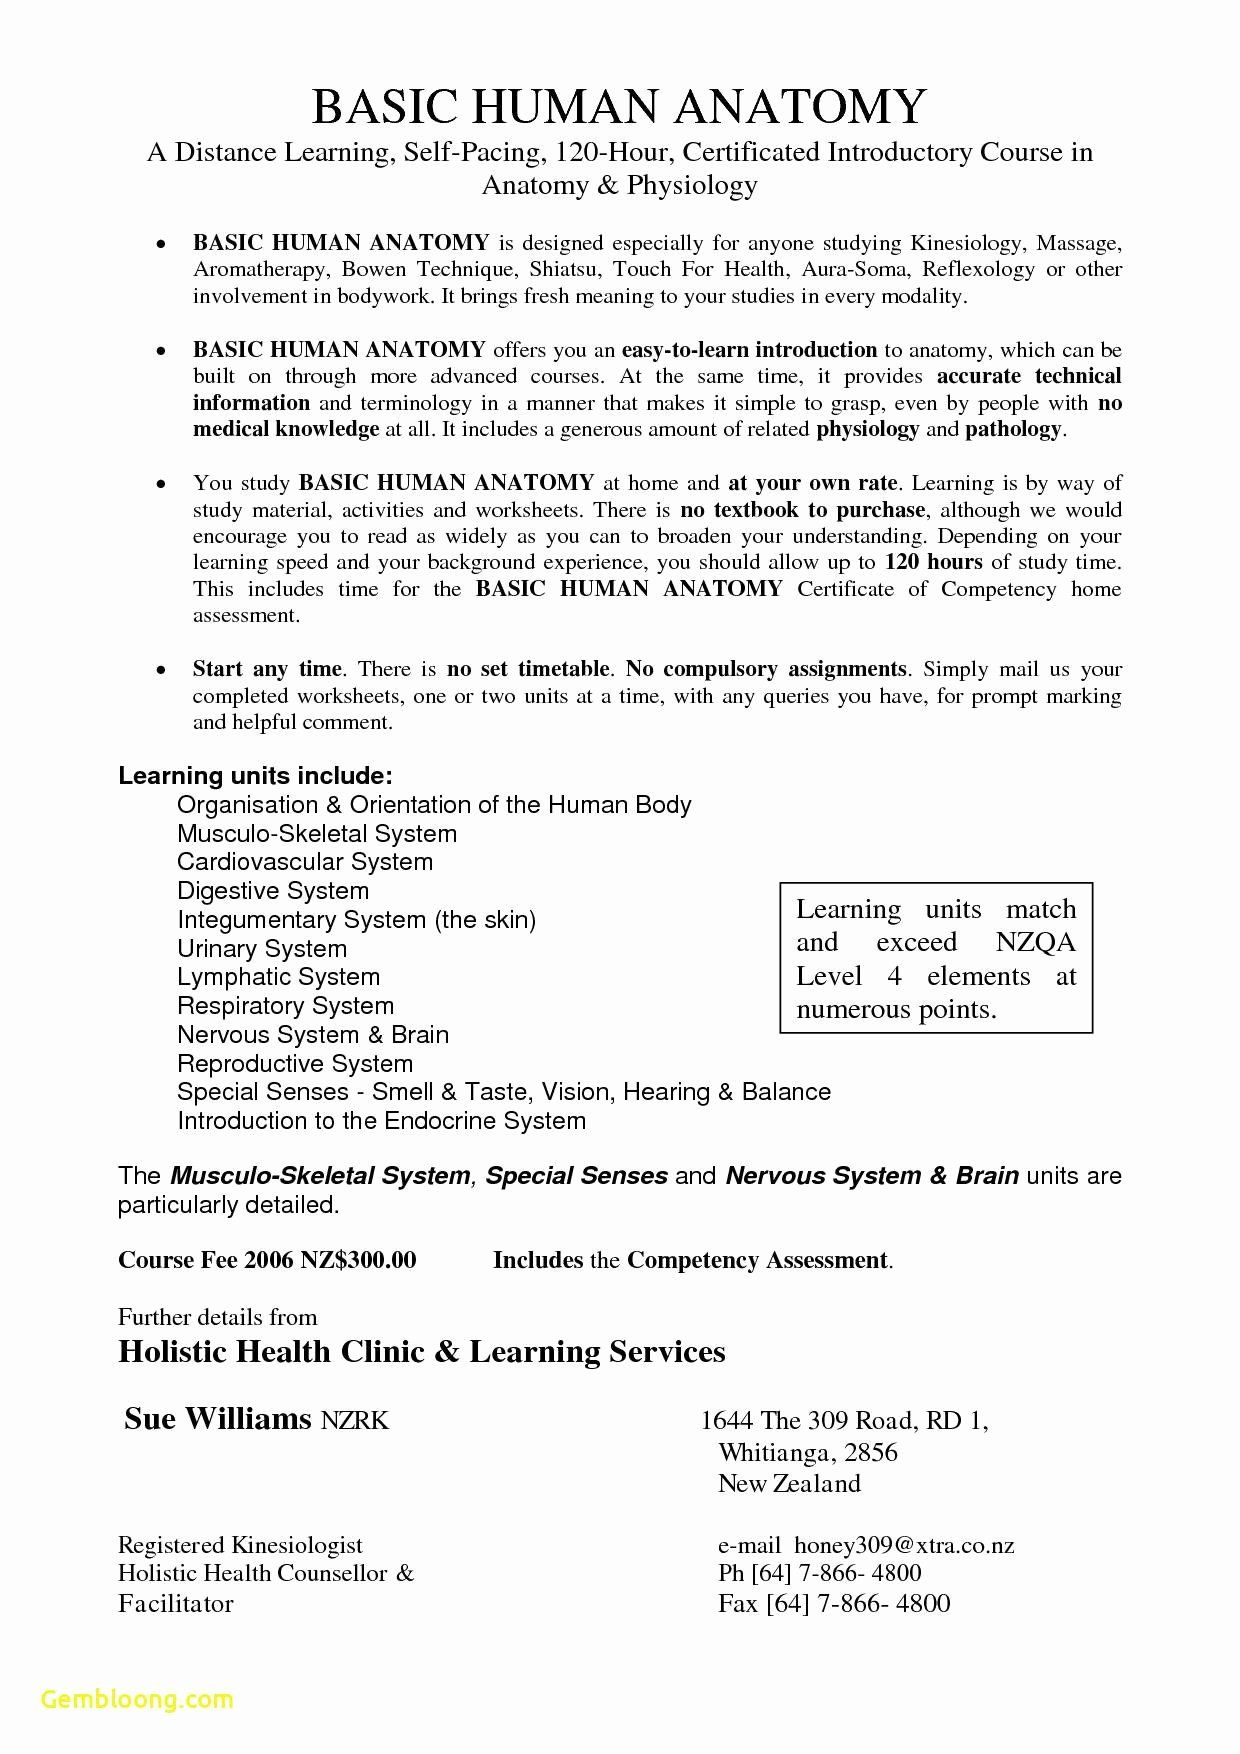 Anatomical Terms Worksheet Answers Best Of Fetal Pig Dissection Worksheet Answers Cramerforcongr In 2020 Body Systems Worksheets Math Subtraction Touch Math Printables